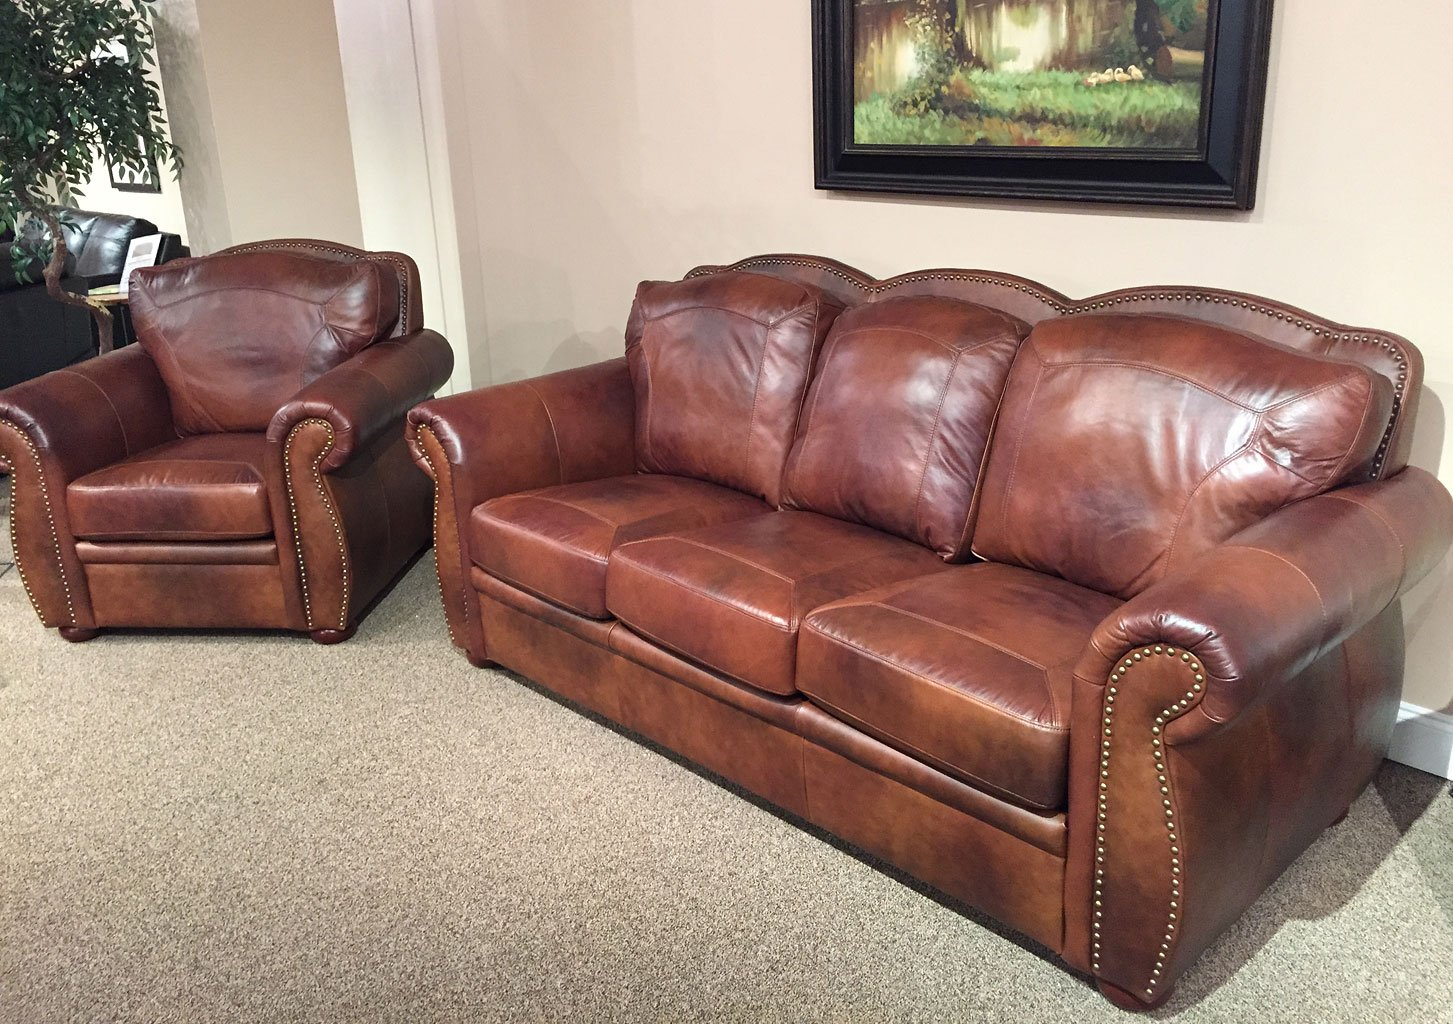 Arizona Leather Living Room Set Leather Italia, 2 Reviews ...